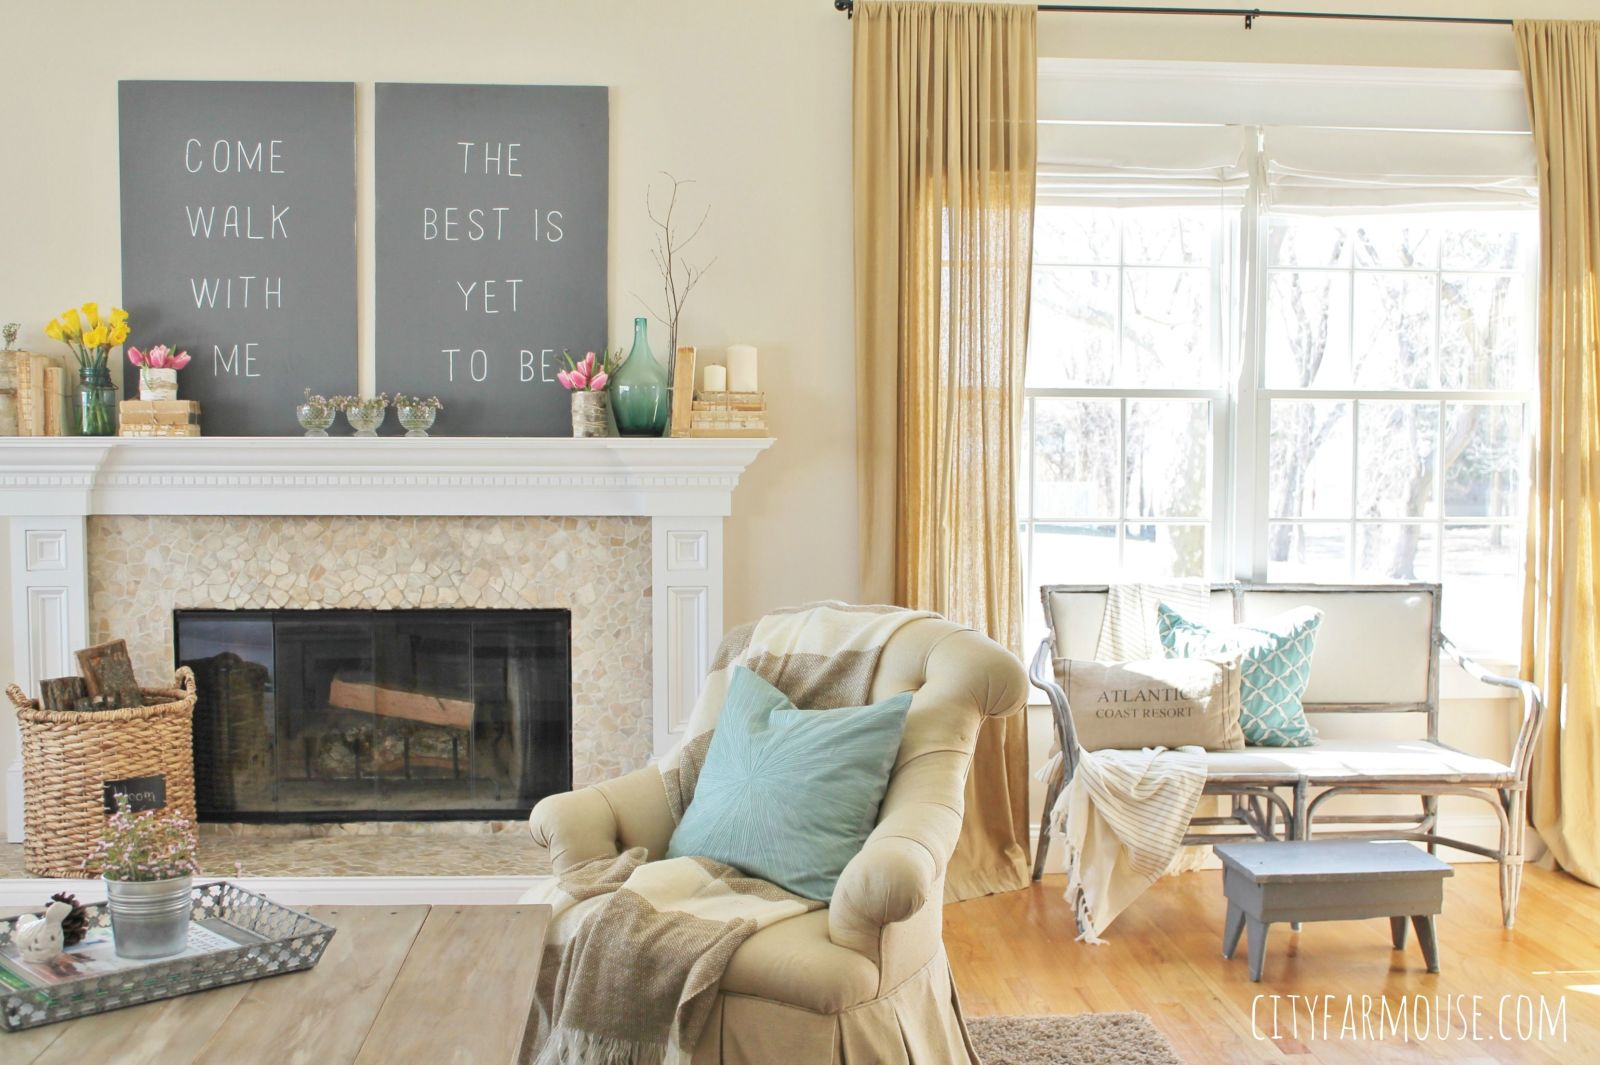 Pleasing 13 Home Design Bloggers You Need To Know About Home Decorating Ideas Inspirational Interior Design Netriciaus